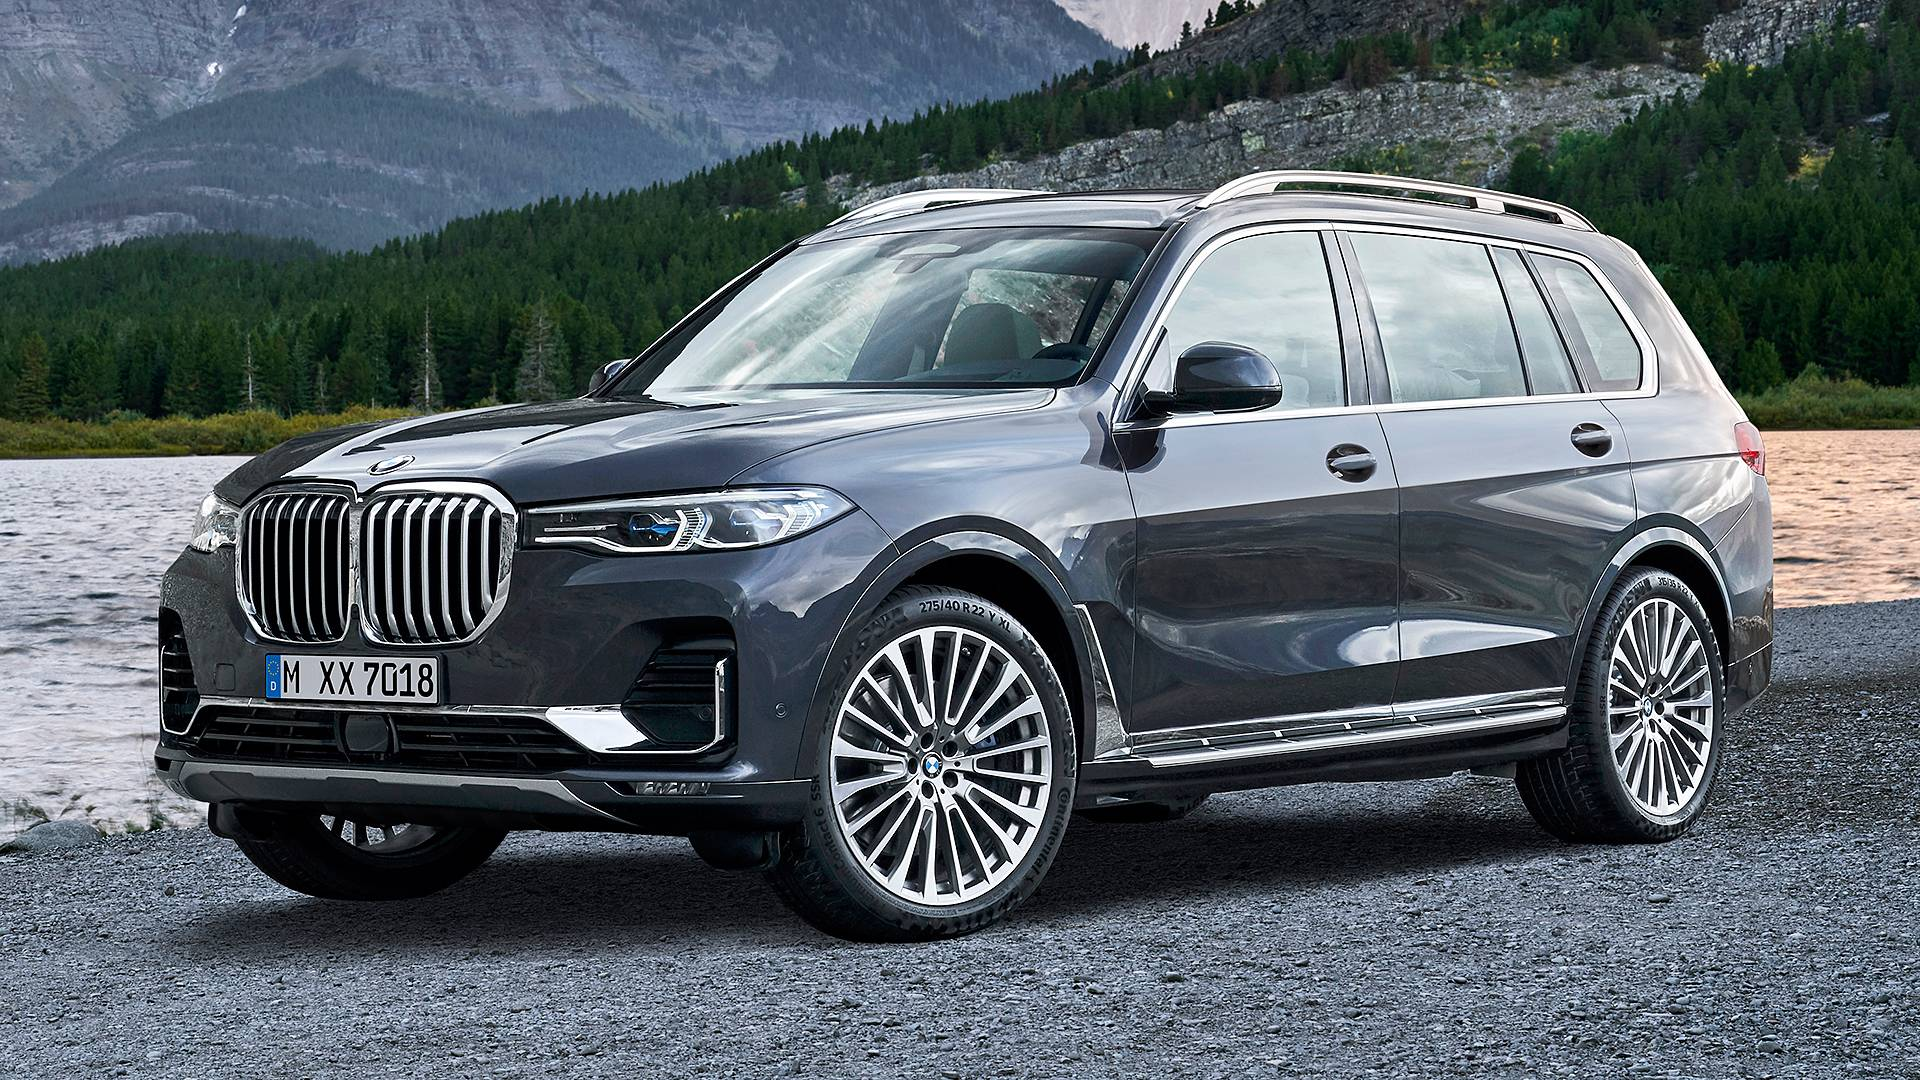 The novelty of the Bavarian automotive manufacturer is the SUV BMW X7